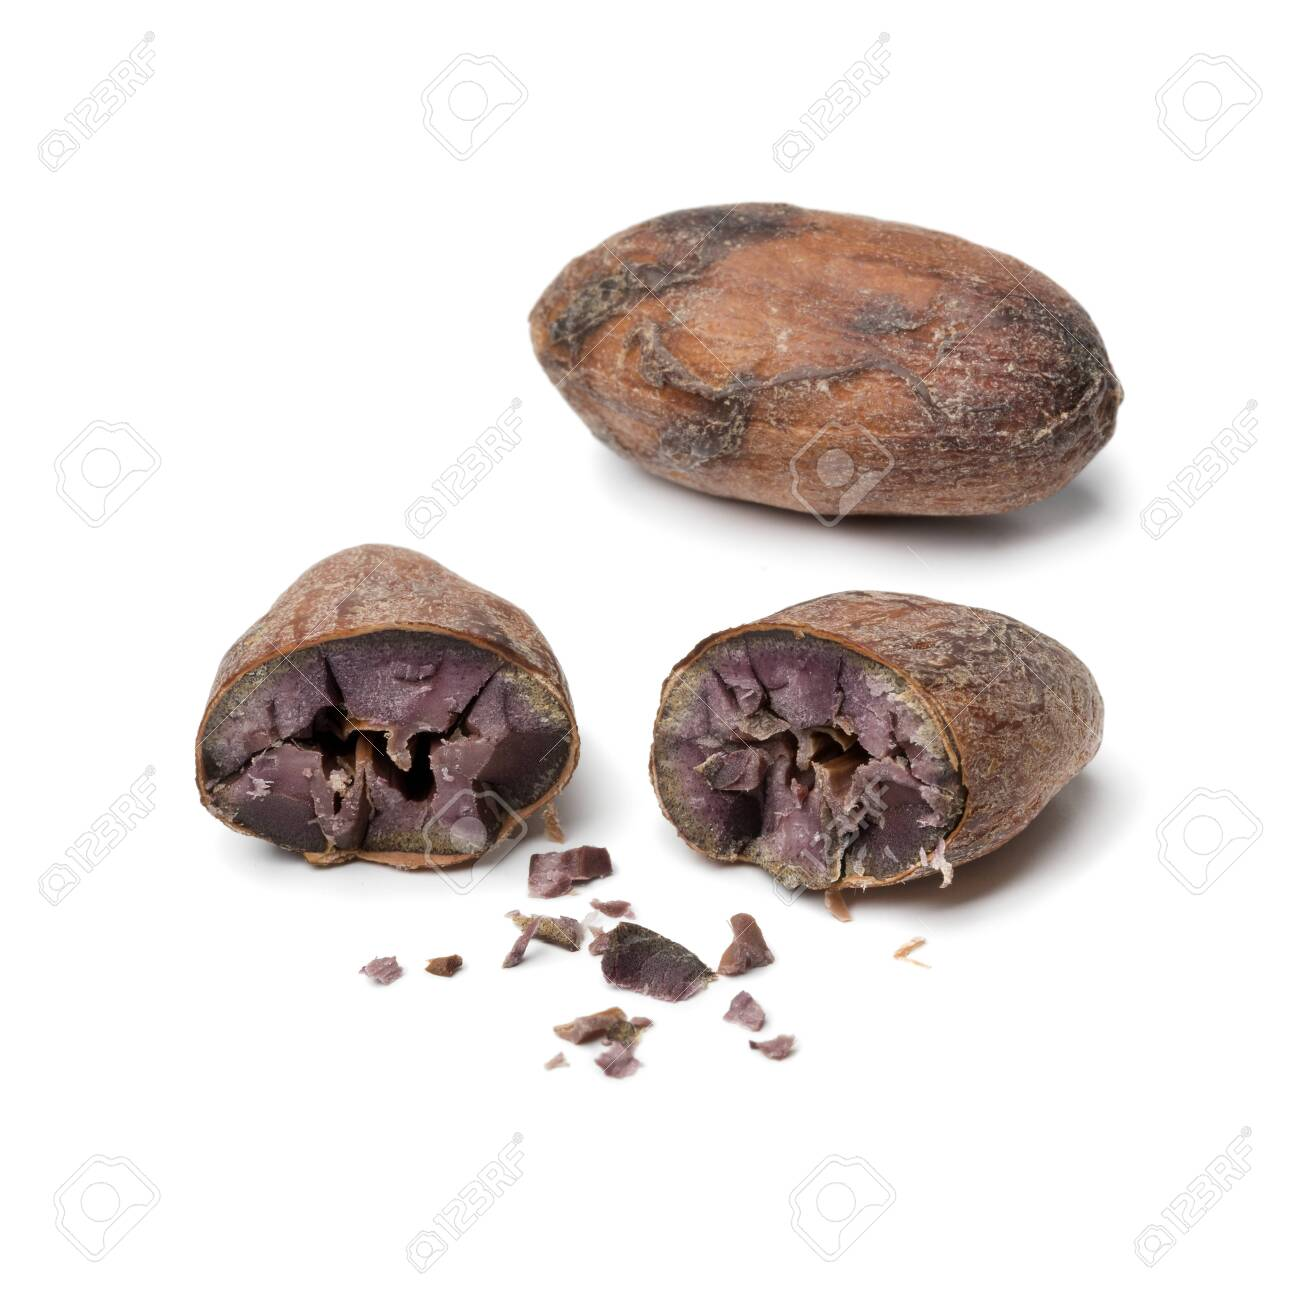 Whole and halved cocoa bean close up isolated on white background - 120613624